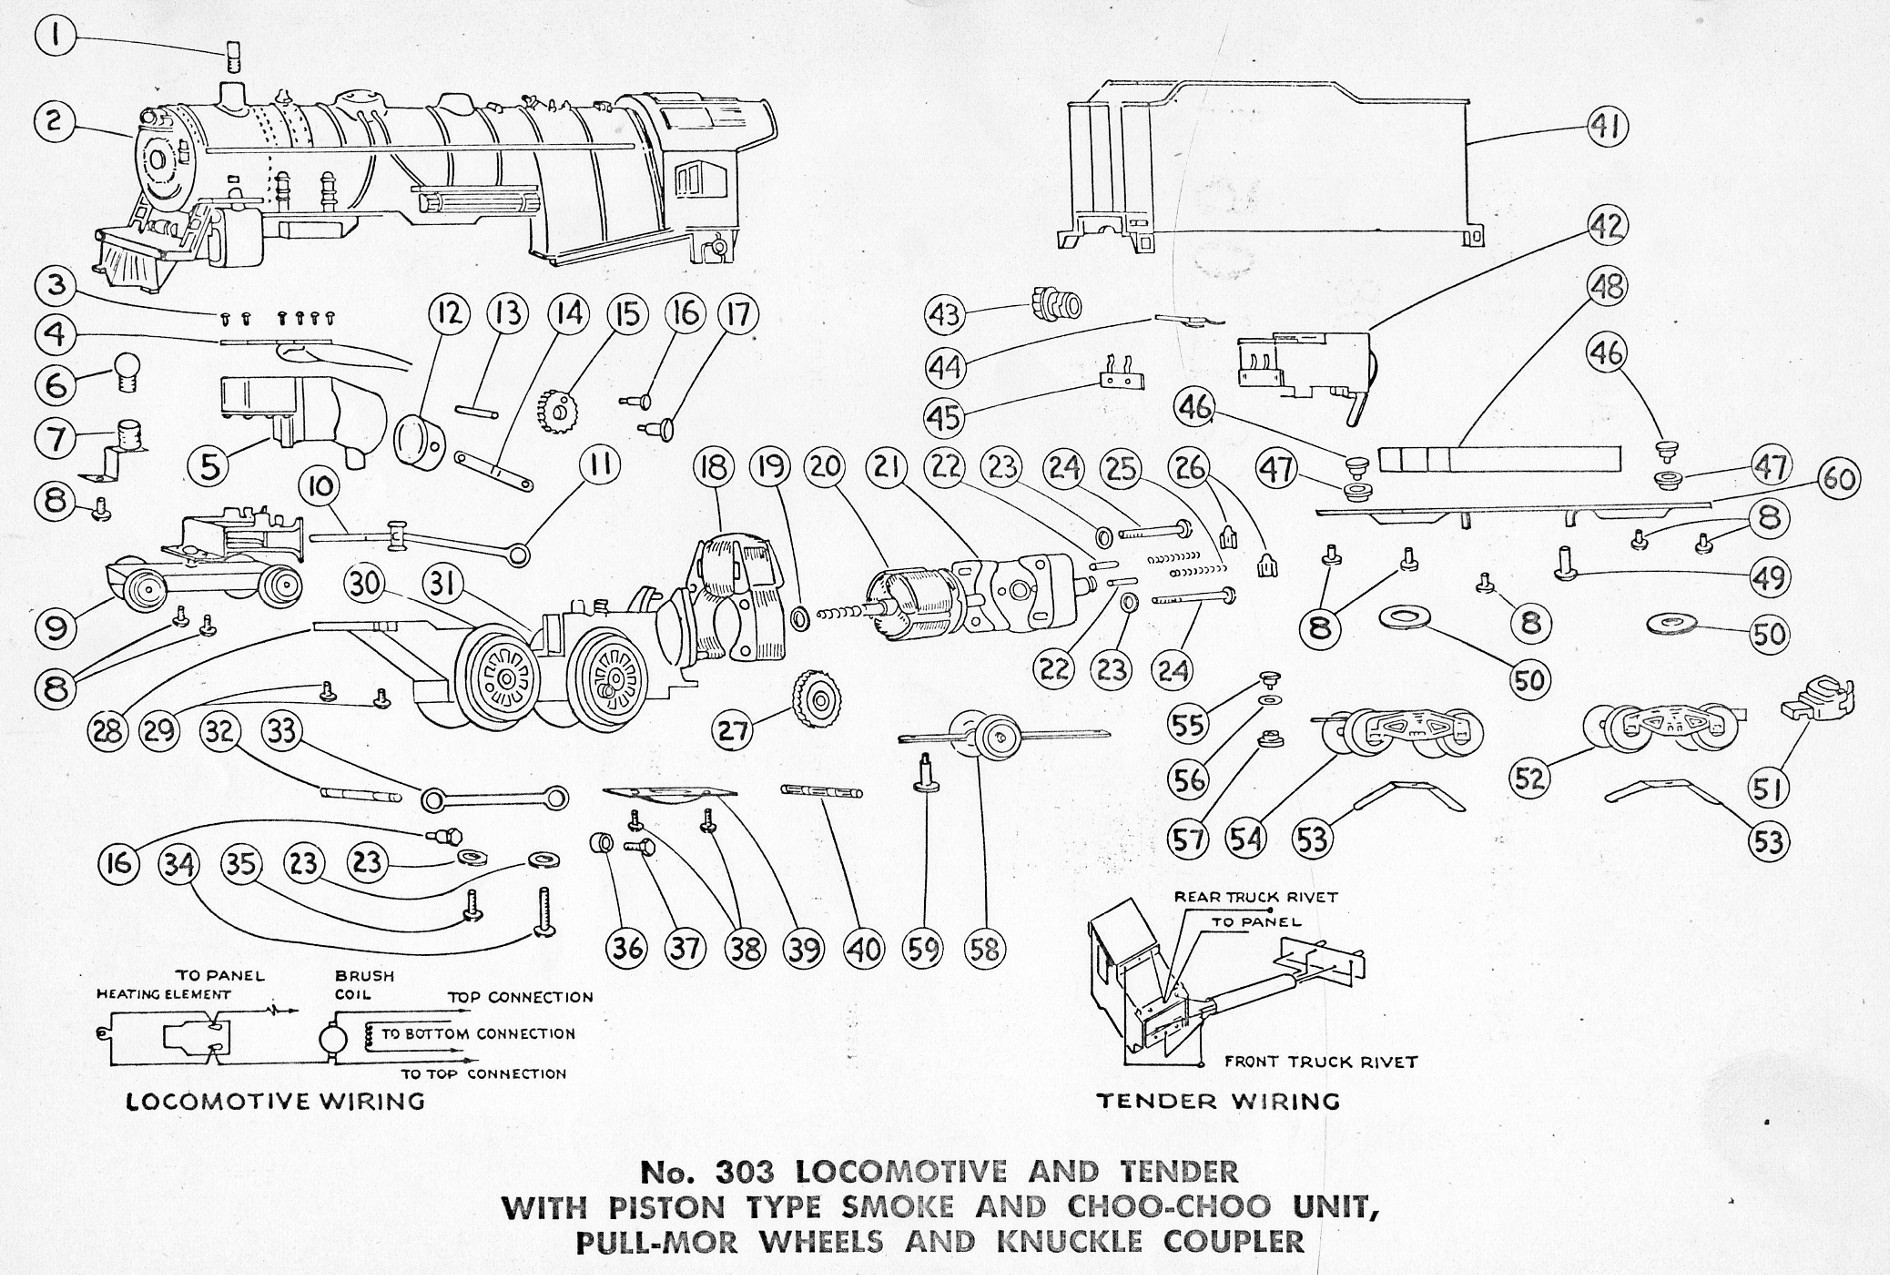 American Flyer Transformer 308 Parts List and Diagram - Page 2